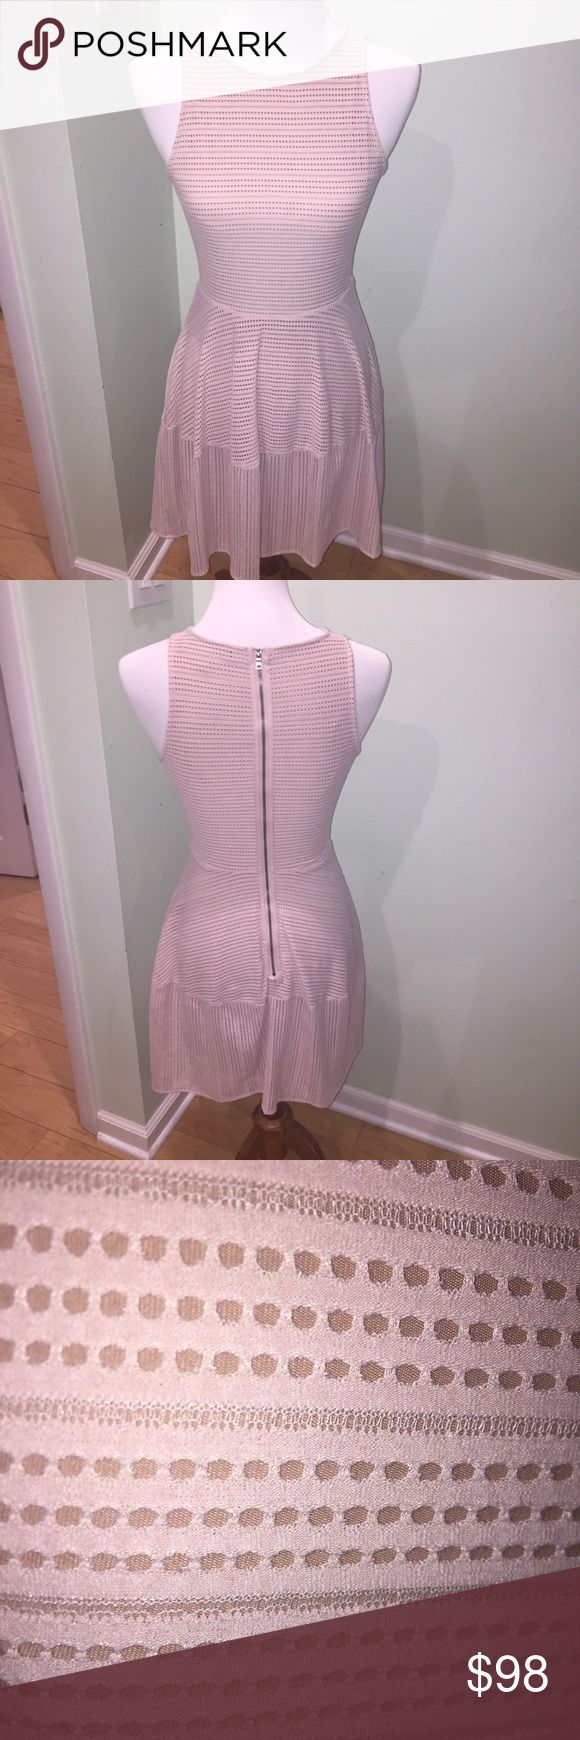 EUC BCBG Sz XS peachy nude party dress super fun and flirty BCBG dress... nude/peachy color... XS but may fit S too. Worn once and dry cleaned. BCBG Dresses Mini